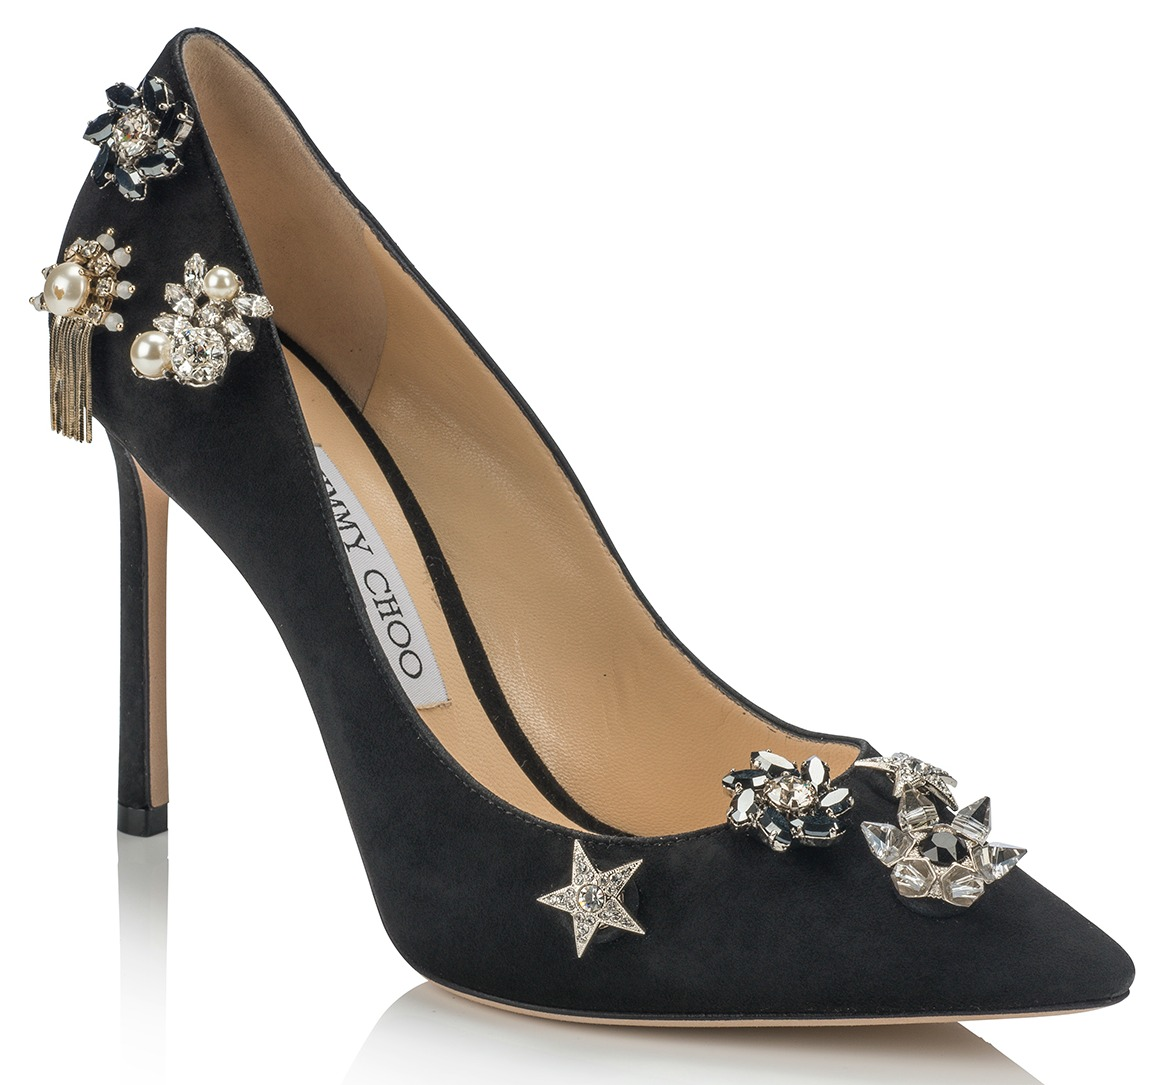 jazz-110-suede-buttons-black-front-view